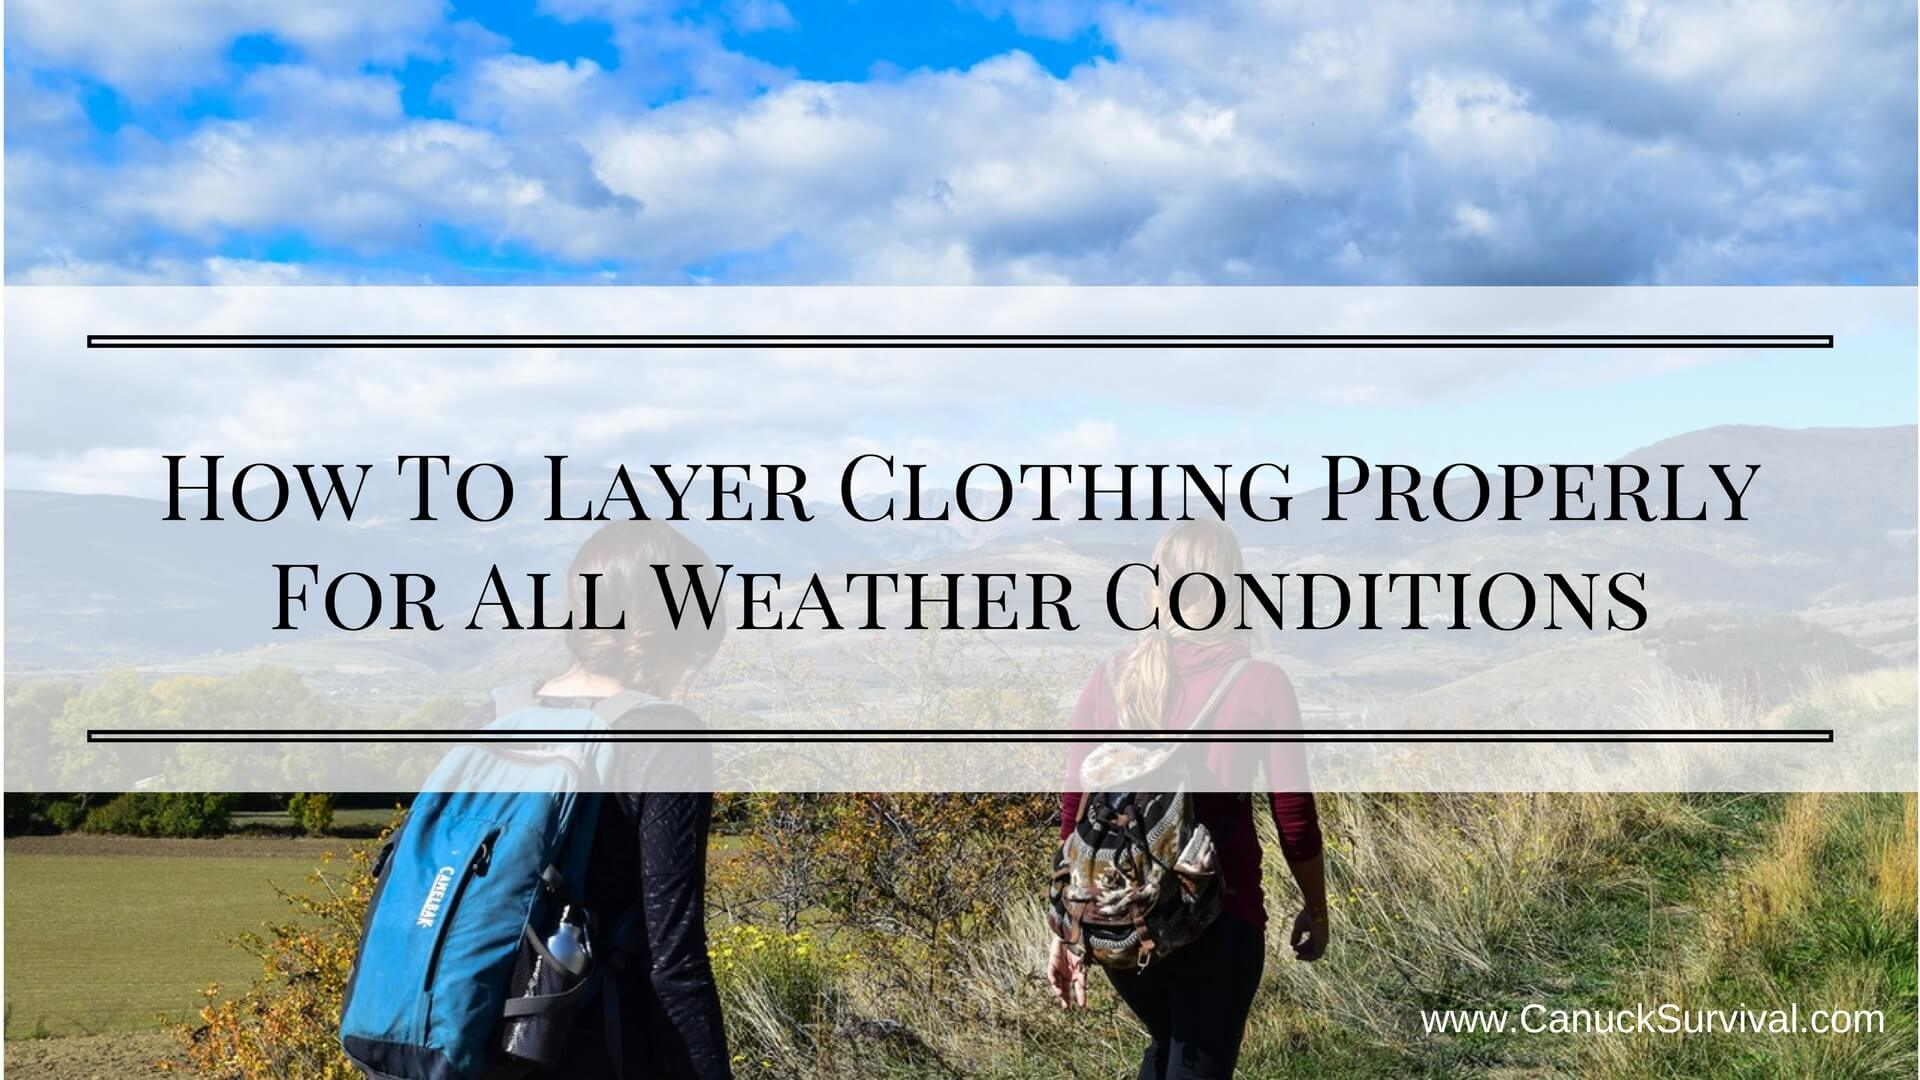 How To Layer Clothing Properly For All Weather Conditions